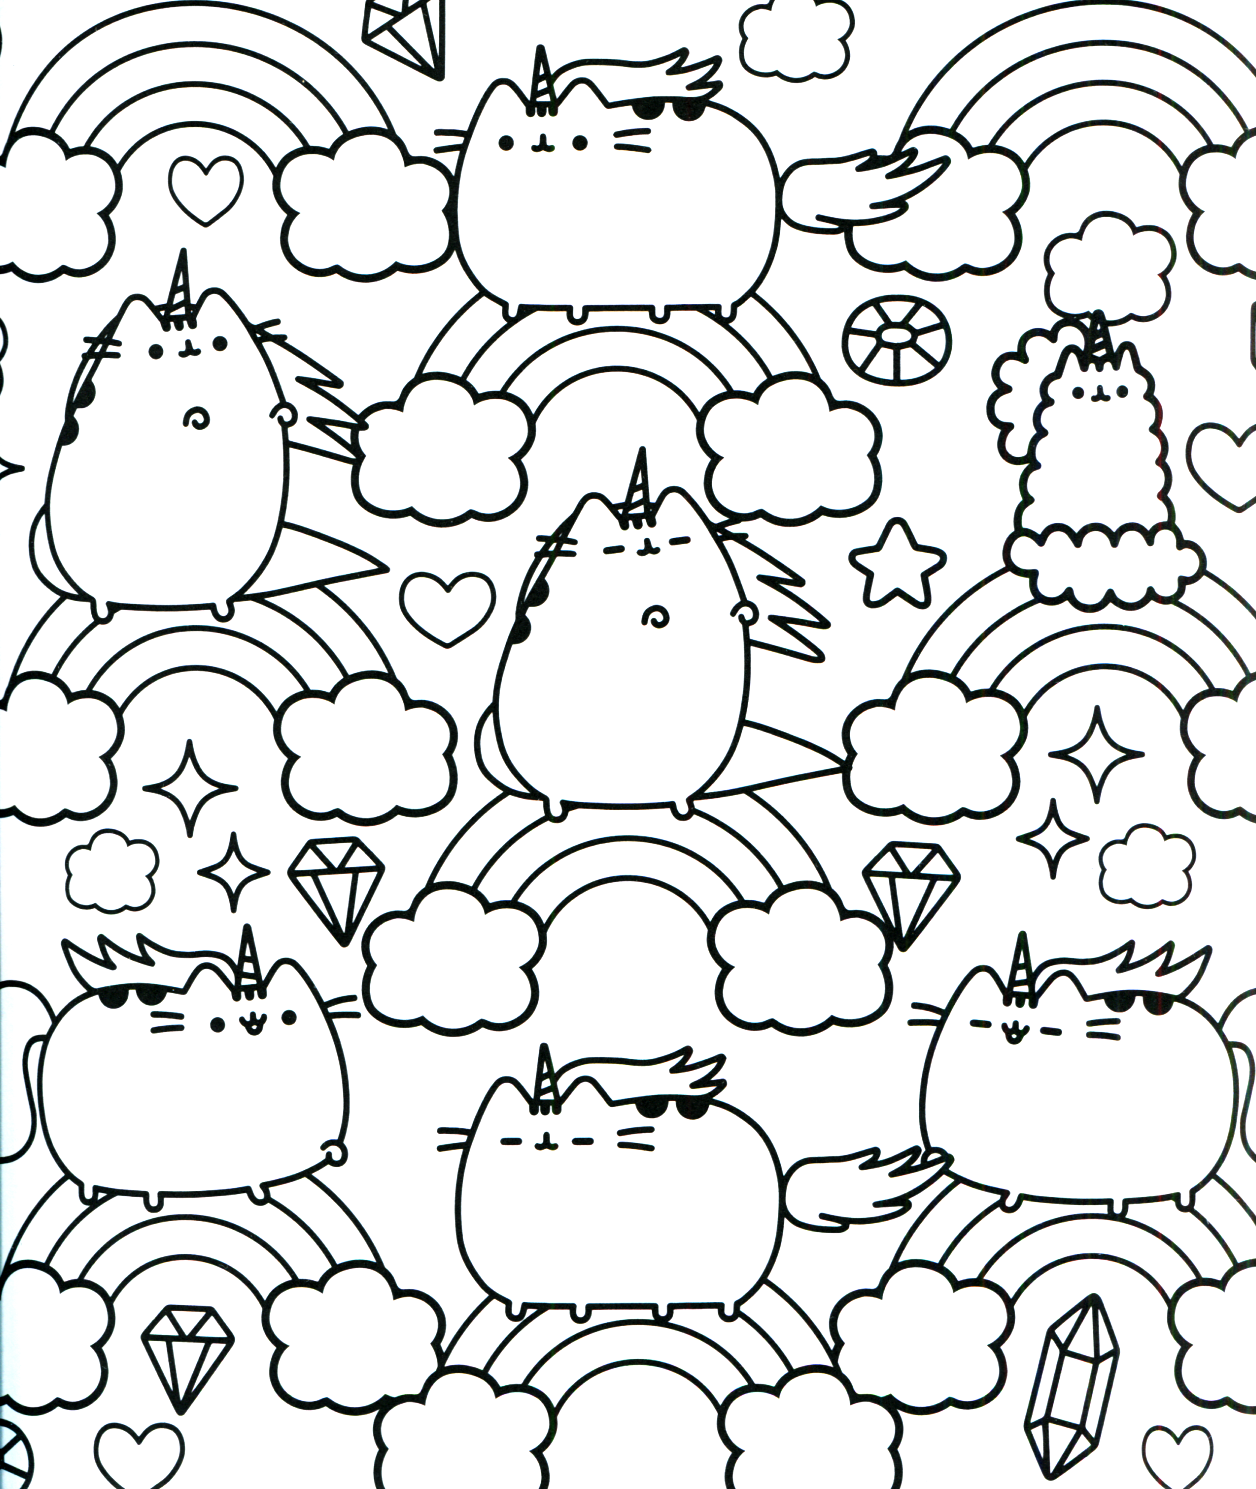 Pusheen Coloring Book Pusheen Pusheen The Cat Unicorn Coloring Pages Pusheen Coloring Pages Cat Coloring Book